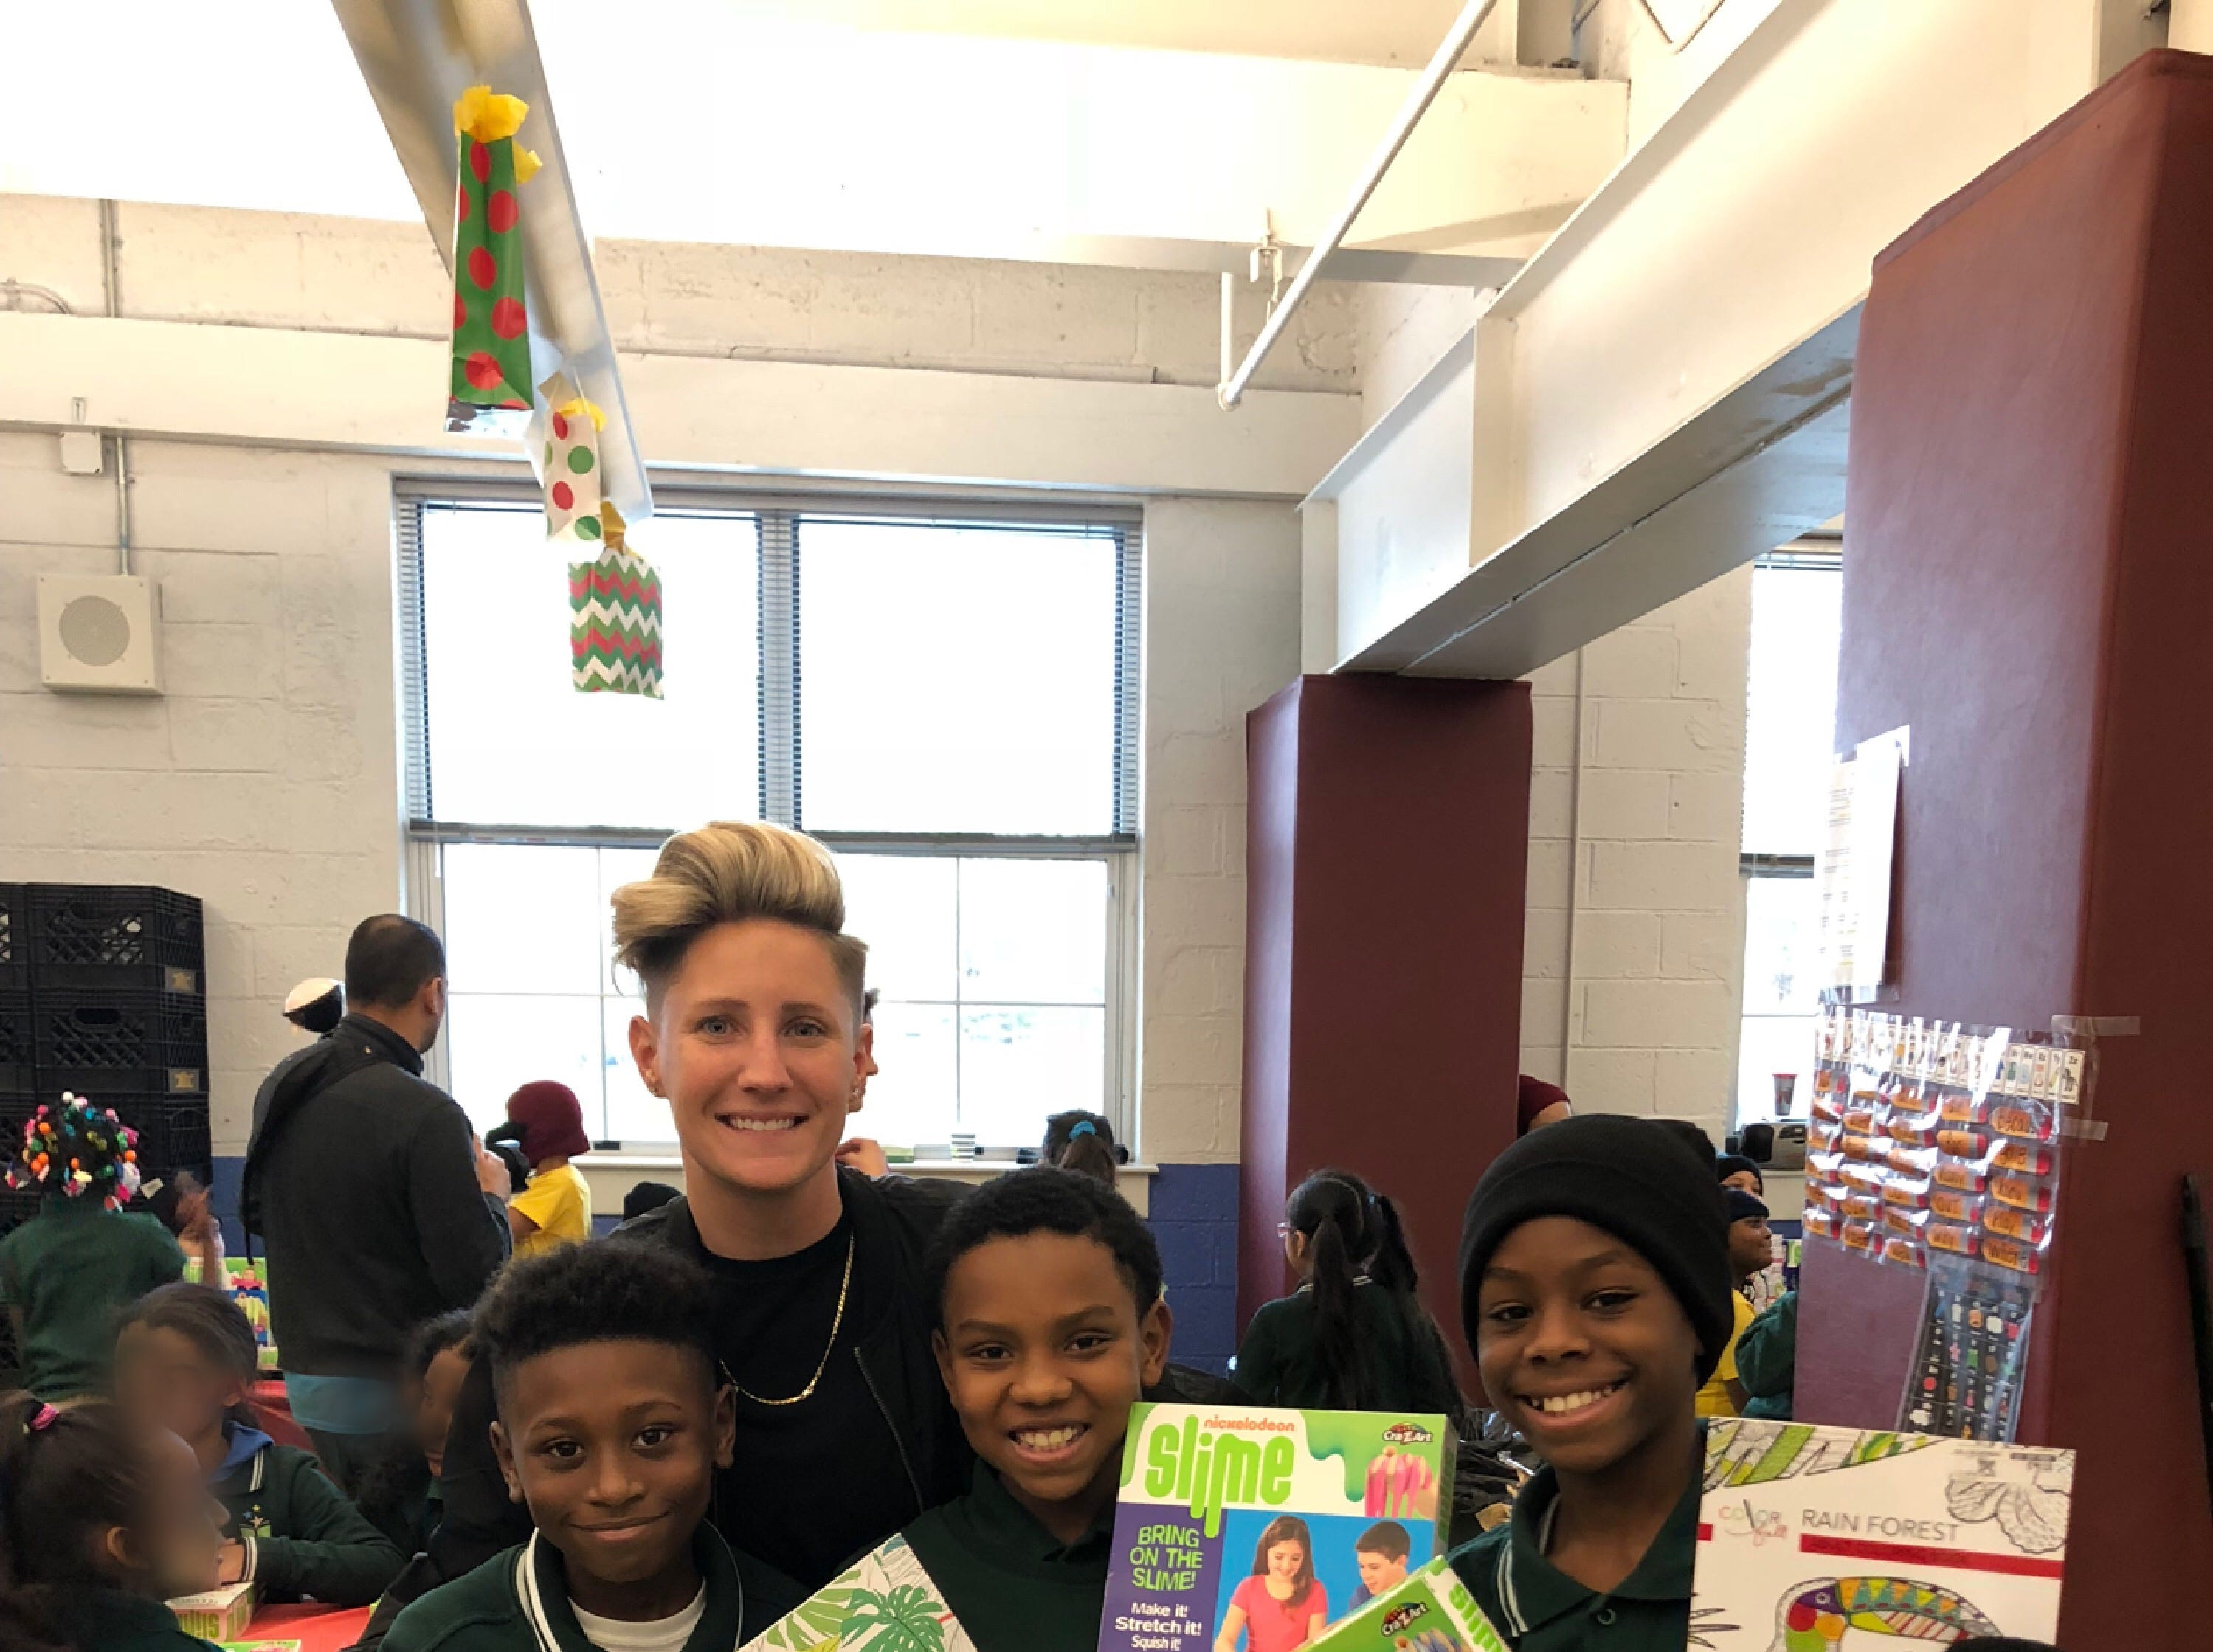 """A Santa Claus of sorts, New Brunswick teacher Jennifer Olawski is ensuring that every single of of her more than 450 students will receive a gift this holiday season. Continuing a program she began in her former school (pictured here with Kyzoir, Jason and Kadir), Olawski, a physical education and health teacher at Livingston Elementary School, created a GoFundMe campaign to raise funds for gifts for the children. This year's effort saw more than $10,000 in donations and the help of many school """"elves."""""""